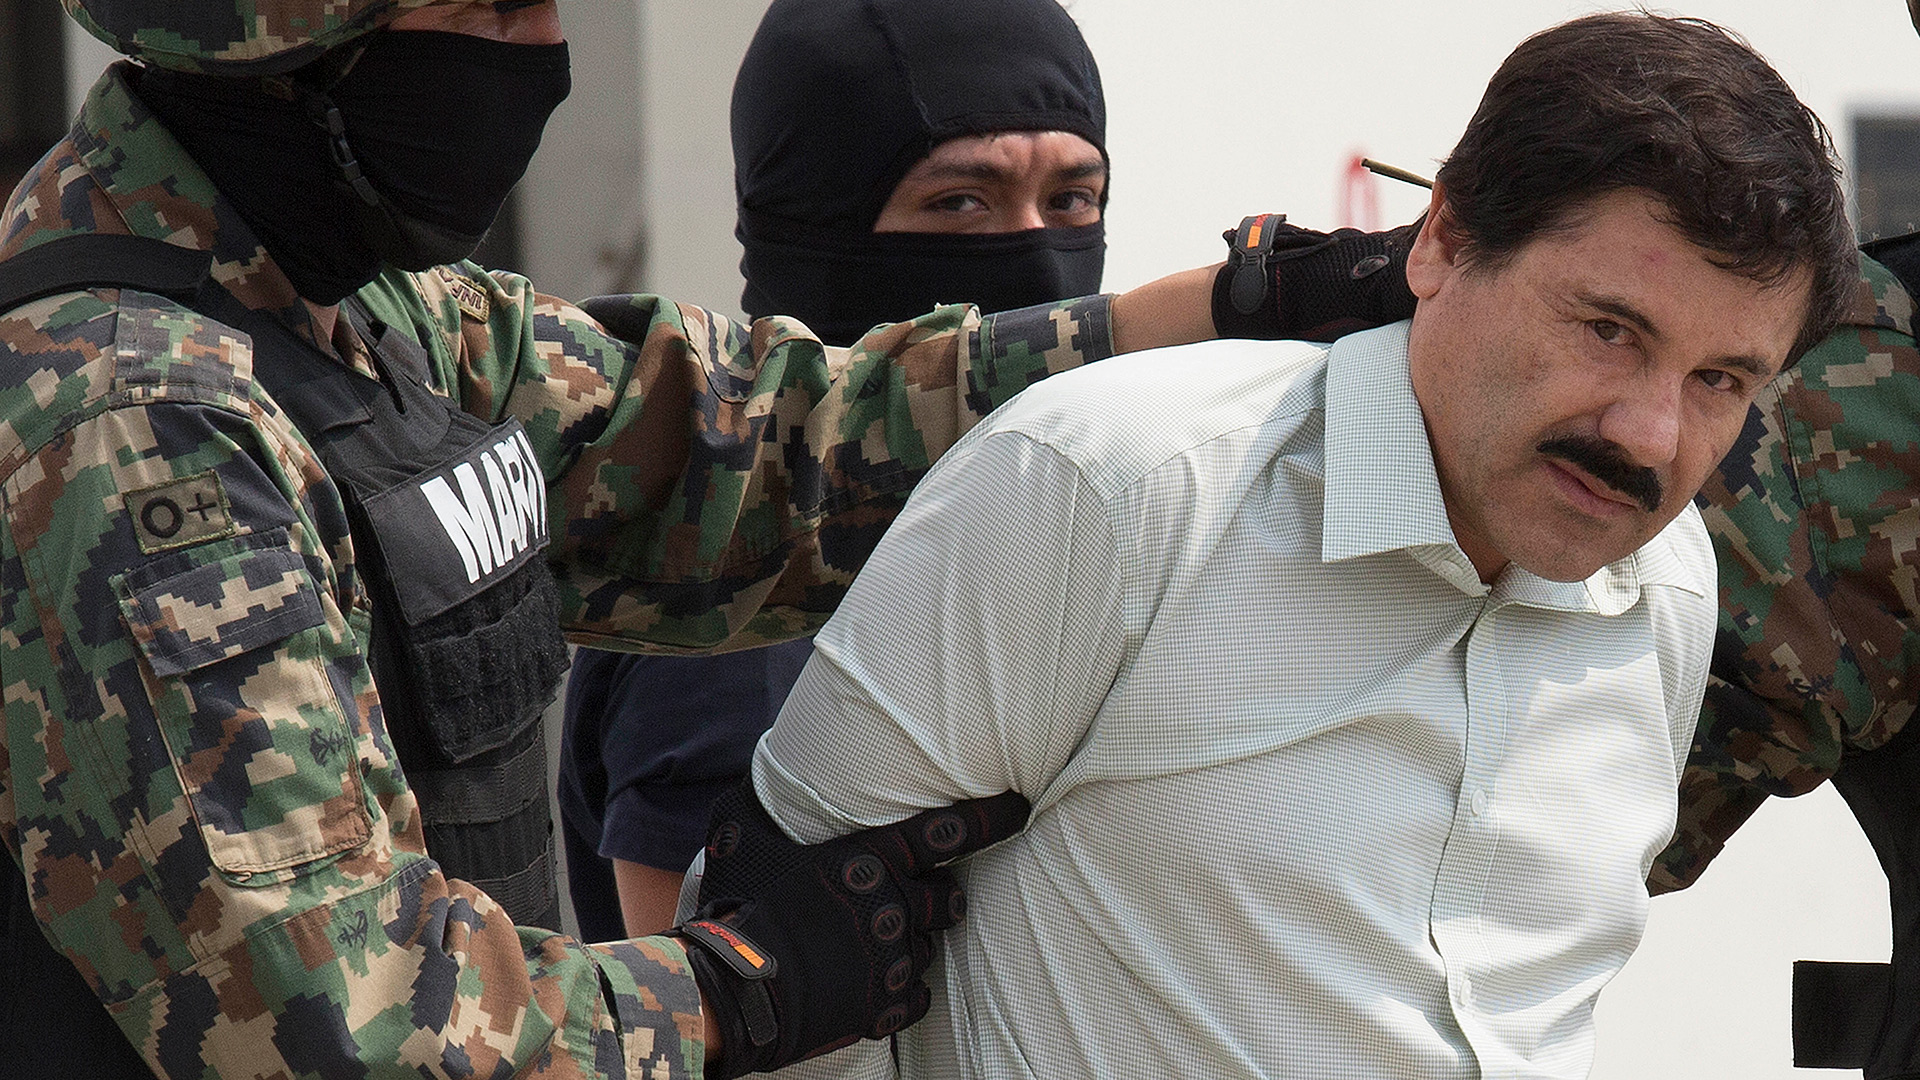 El Chapo's Trial: Why Mexican Drug Cartels Leave 'Calling Cards' With Their Murder Victims